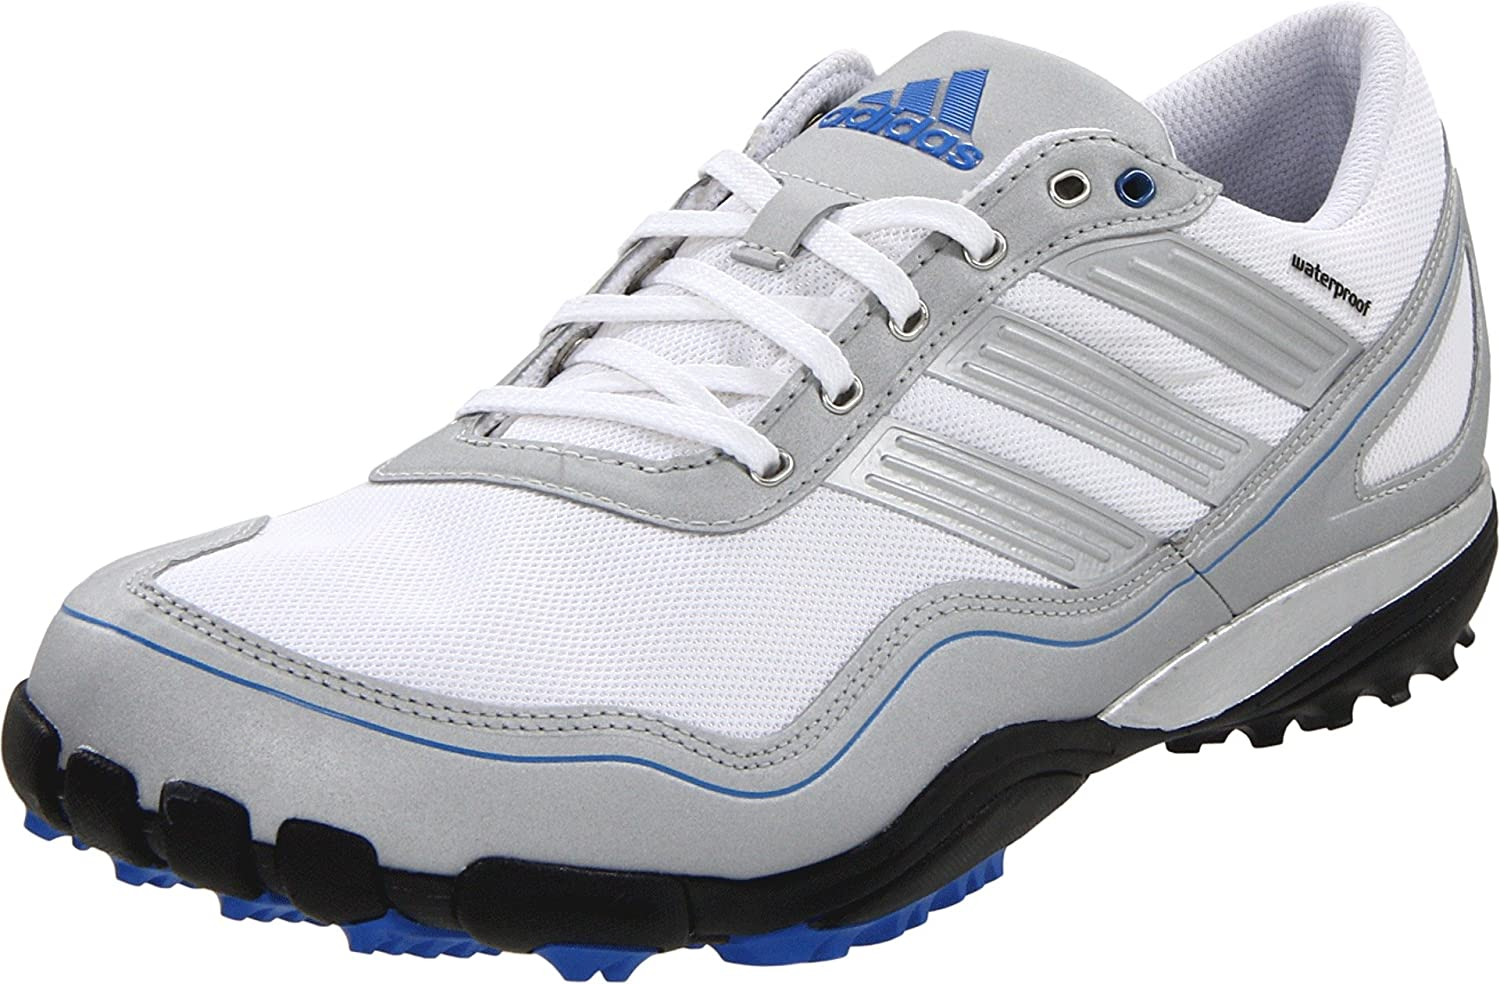 adidas shoes for sale cheap adidas shoes reviews